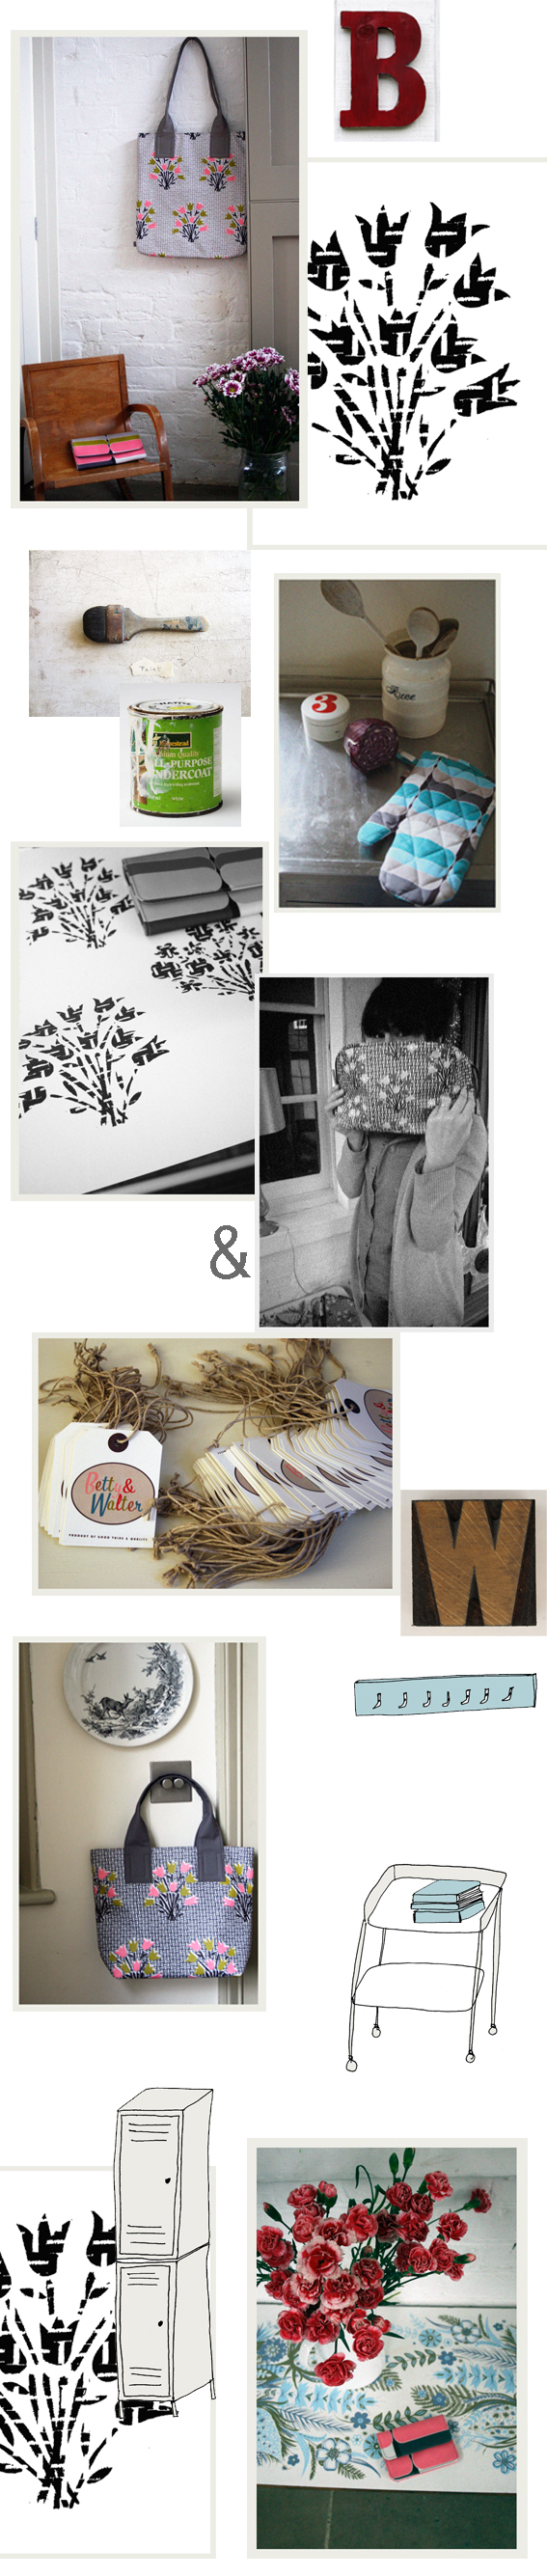 Betty & Walter, a new brand by Lisa Levis (nee Stickley) do Top Drawer, London to launch the new Spring collection.